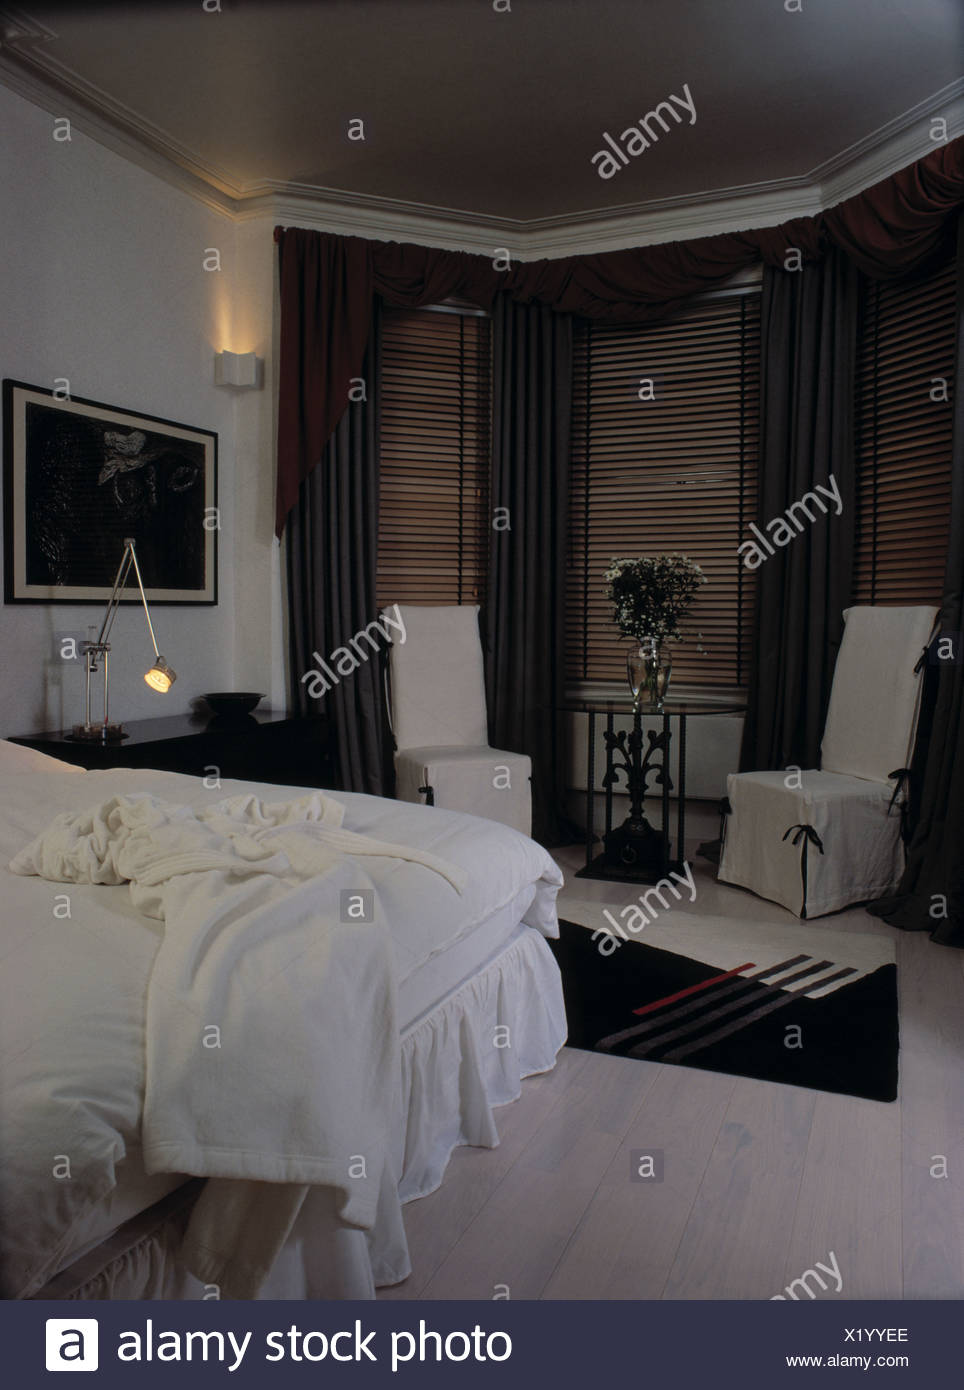 White Loosecovers On Chairs In Front Of Bay Window With Wooden Blinds And Grey  Curtains In White Bedroom With White Bedlinen